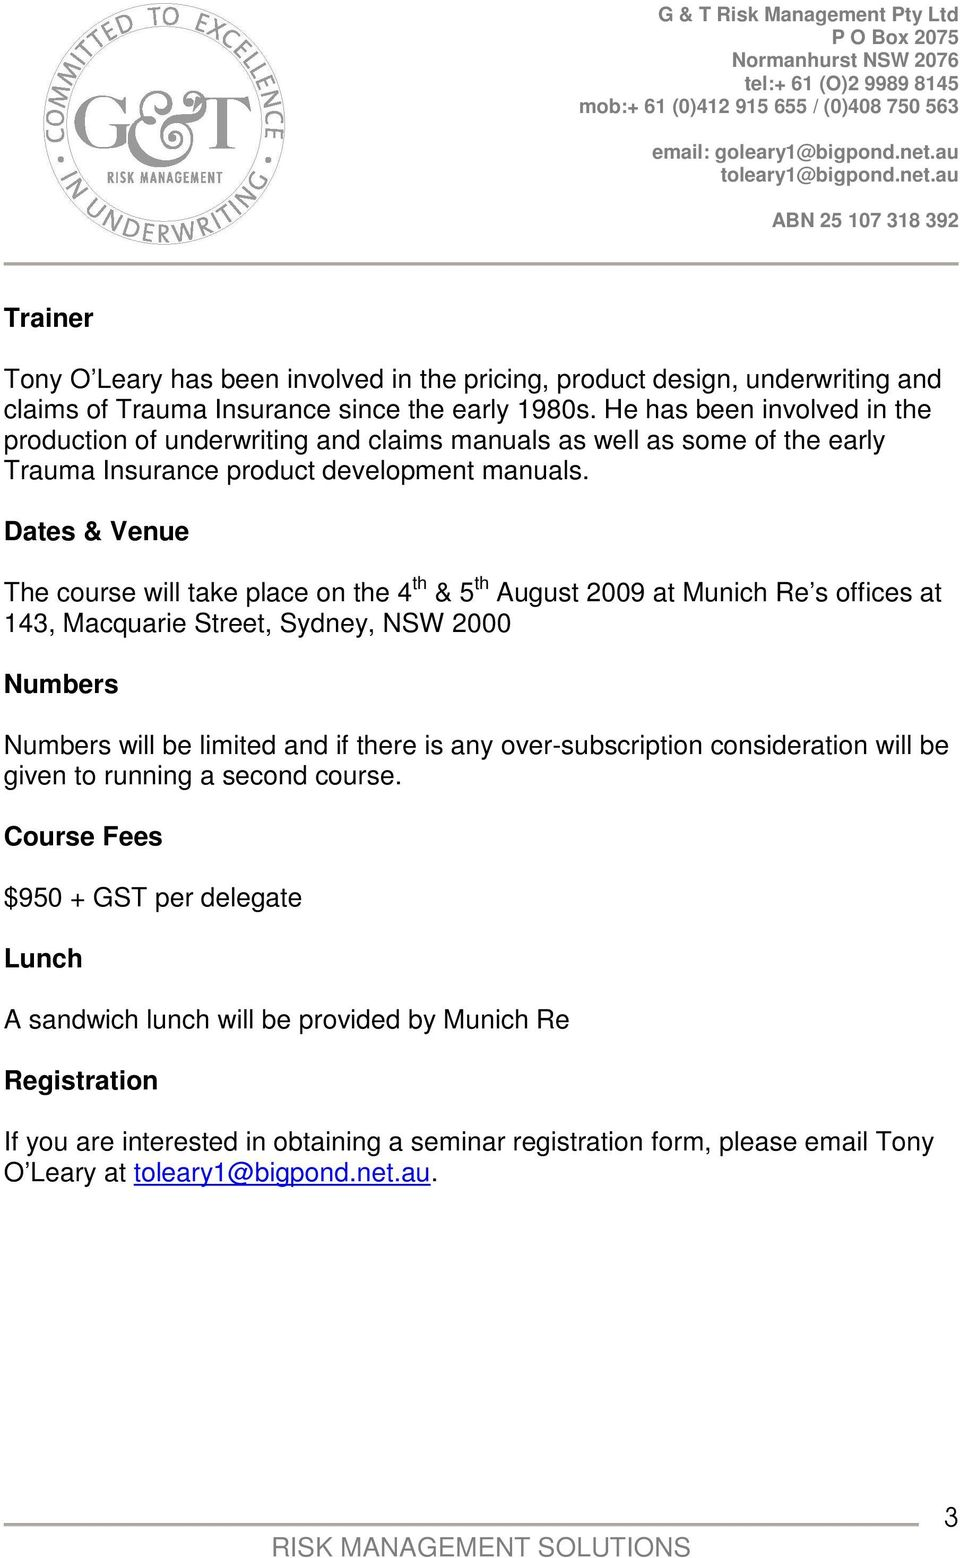 Dates & Venue The course will take place on the 4 th & 5 th August 2009 at Munich Re s offices at 143, Macquarie Street, Sydney, NSW 2000 Numbers Numbers will be limited and if there is